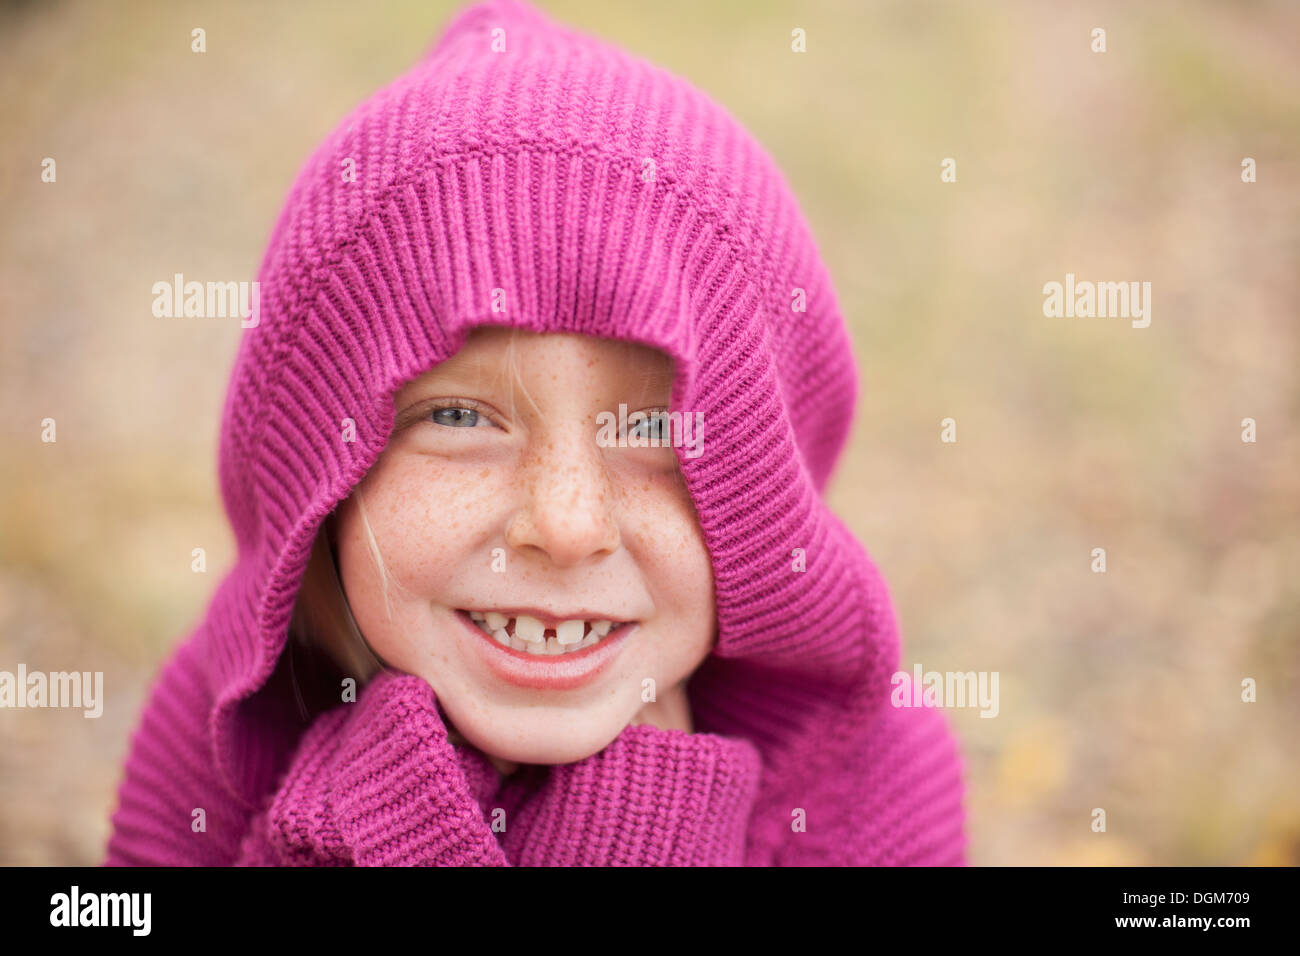 A girl in a magenta hooded sweater, with the hood covering her head - Stock Image